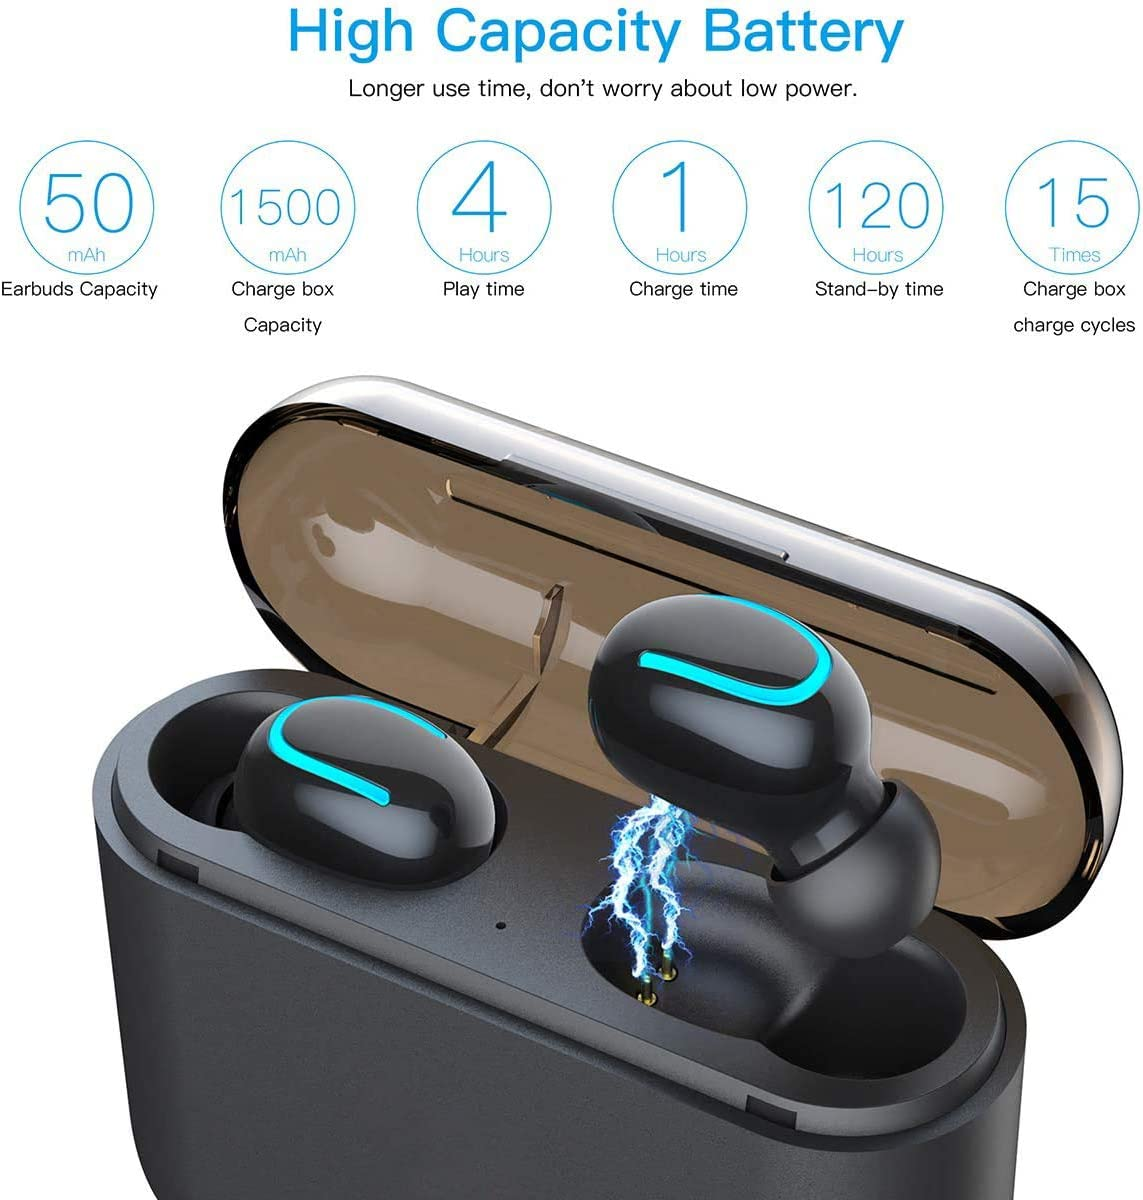 Rinino Bluetooth 5.0 Wireless Earbuds with Wireless Charging Case IPX5 Waterproof 1500mAh Portable Charging Case 6.0, Noise Cancelling Mic Headset Premium Sound with Deep Bass for Sport Black